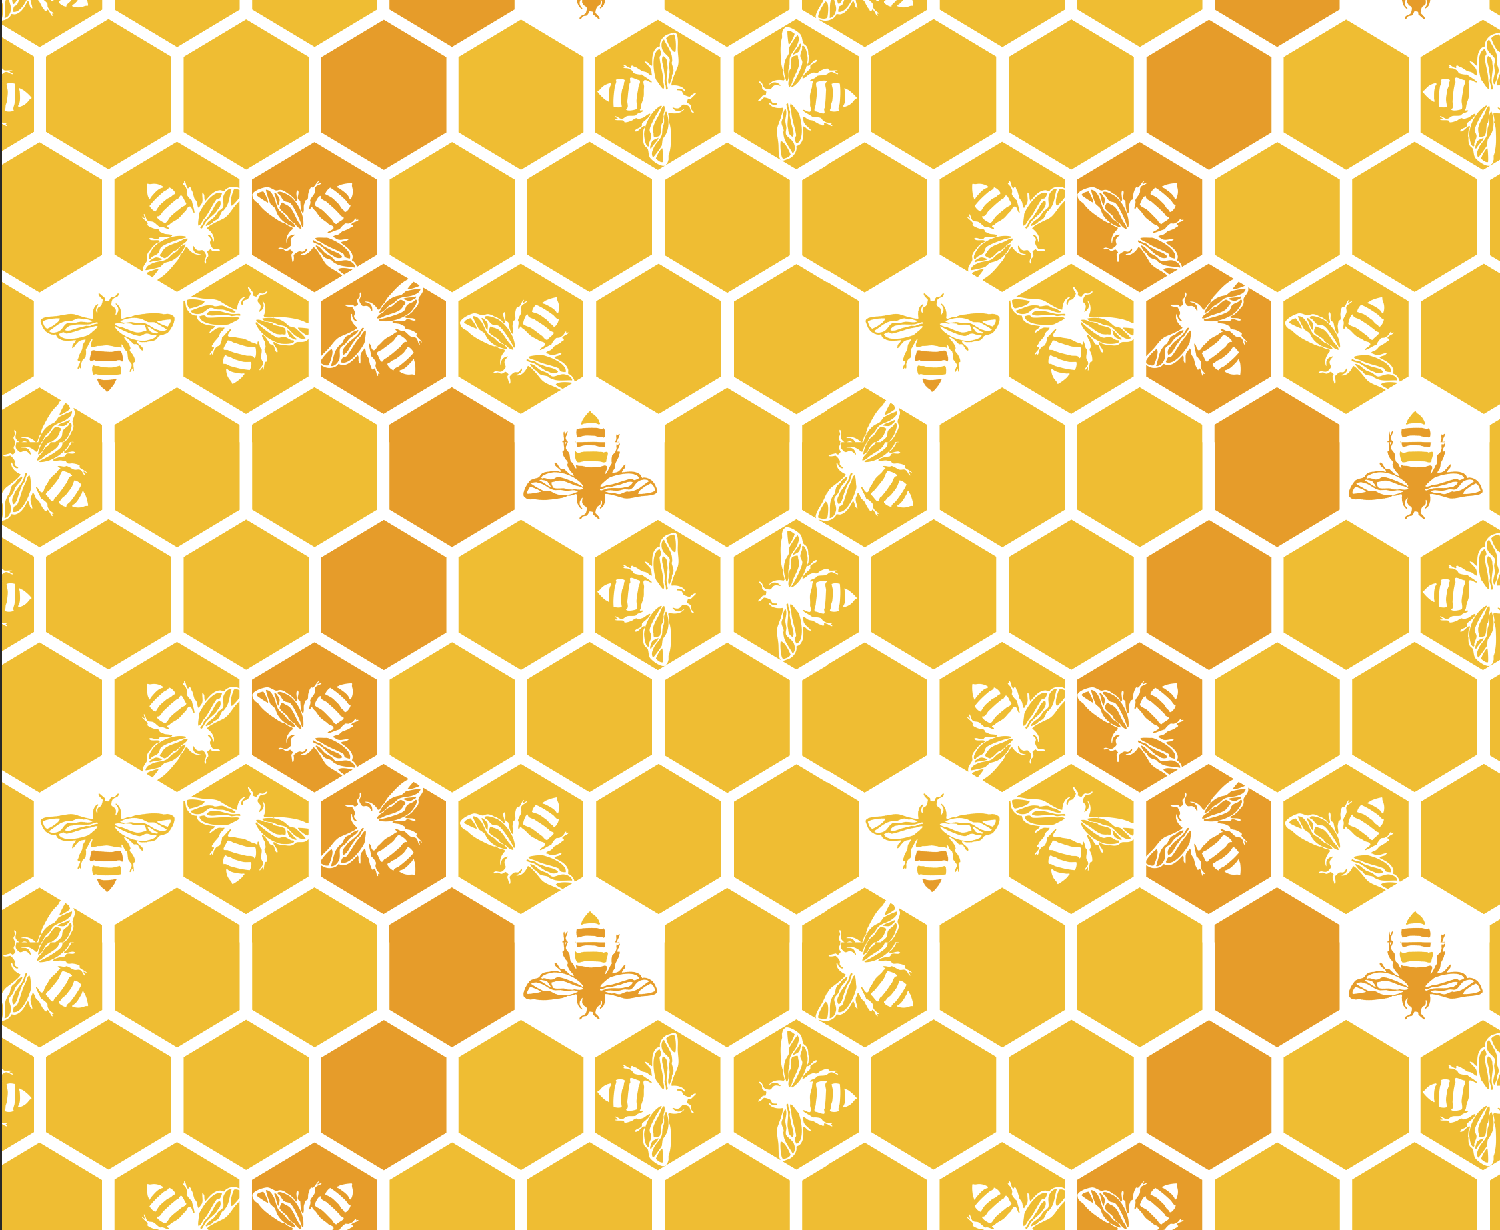 Honey Bees on Honeycomb repeat